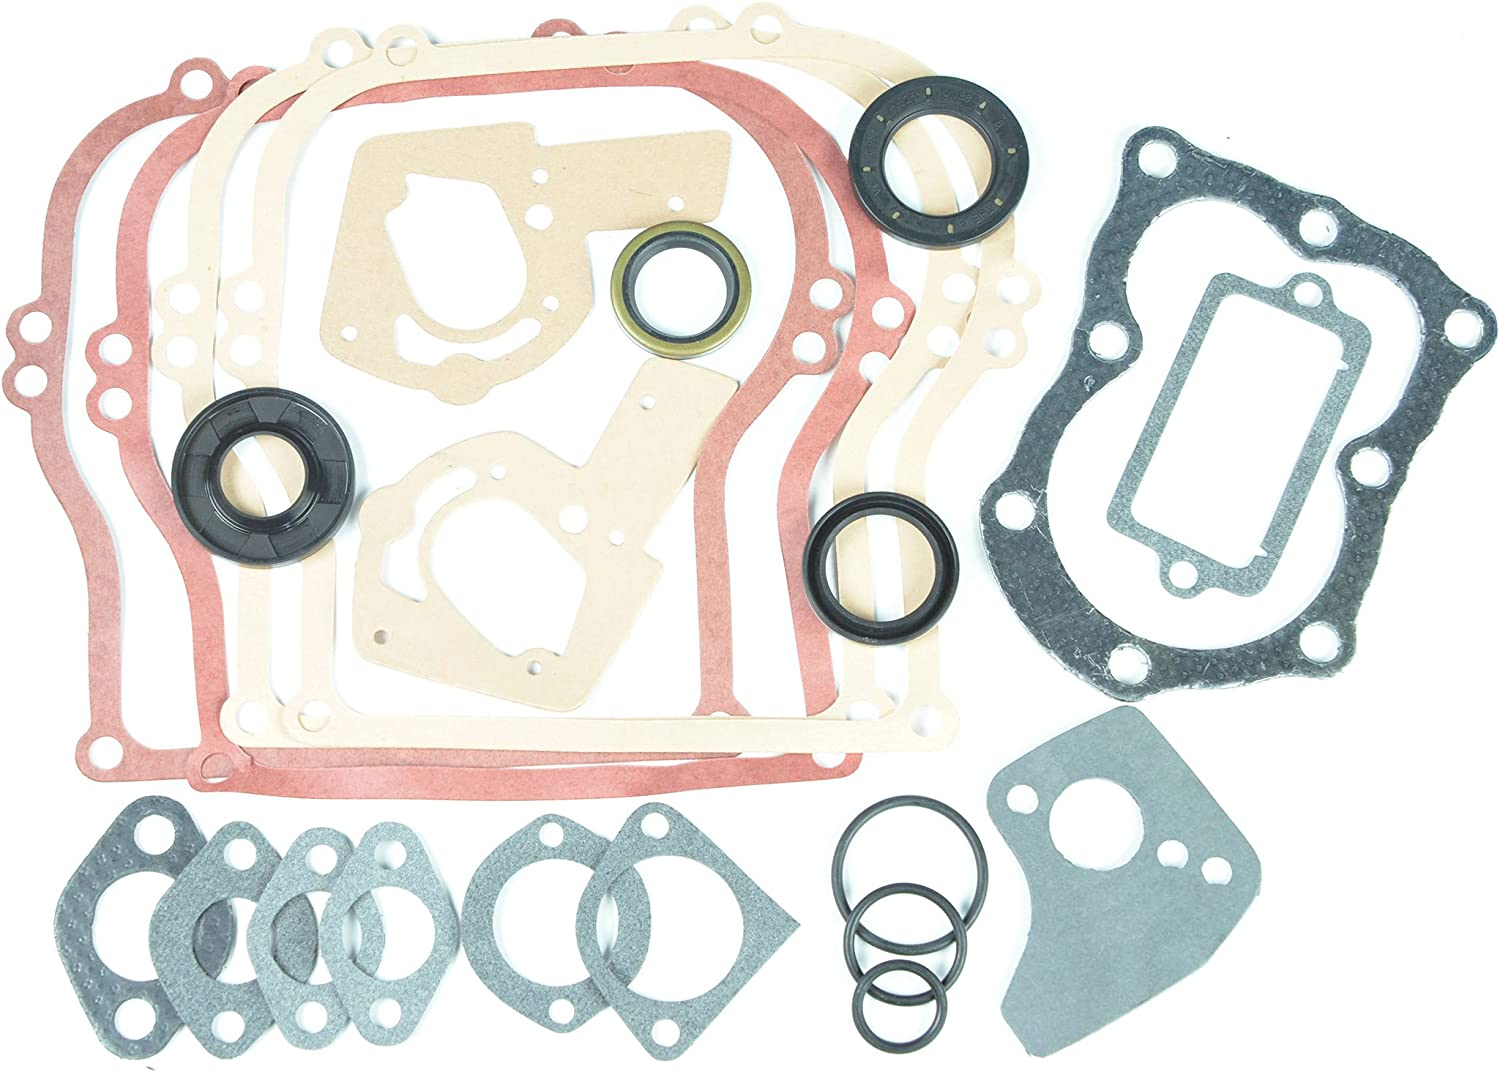 Oregon 50-410 Complete Gasket Excellence Set Seals Max 61% OFF Bri for Replacement with